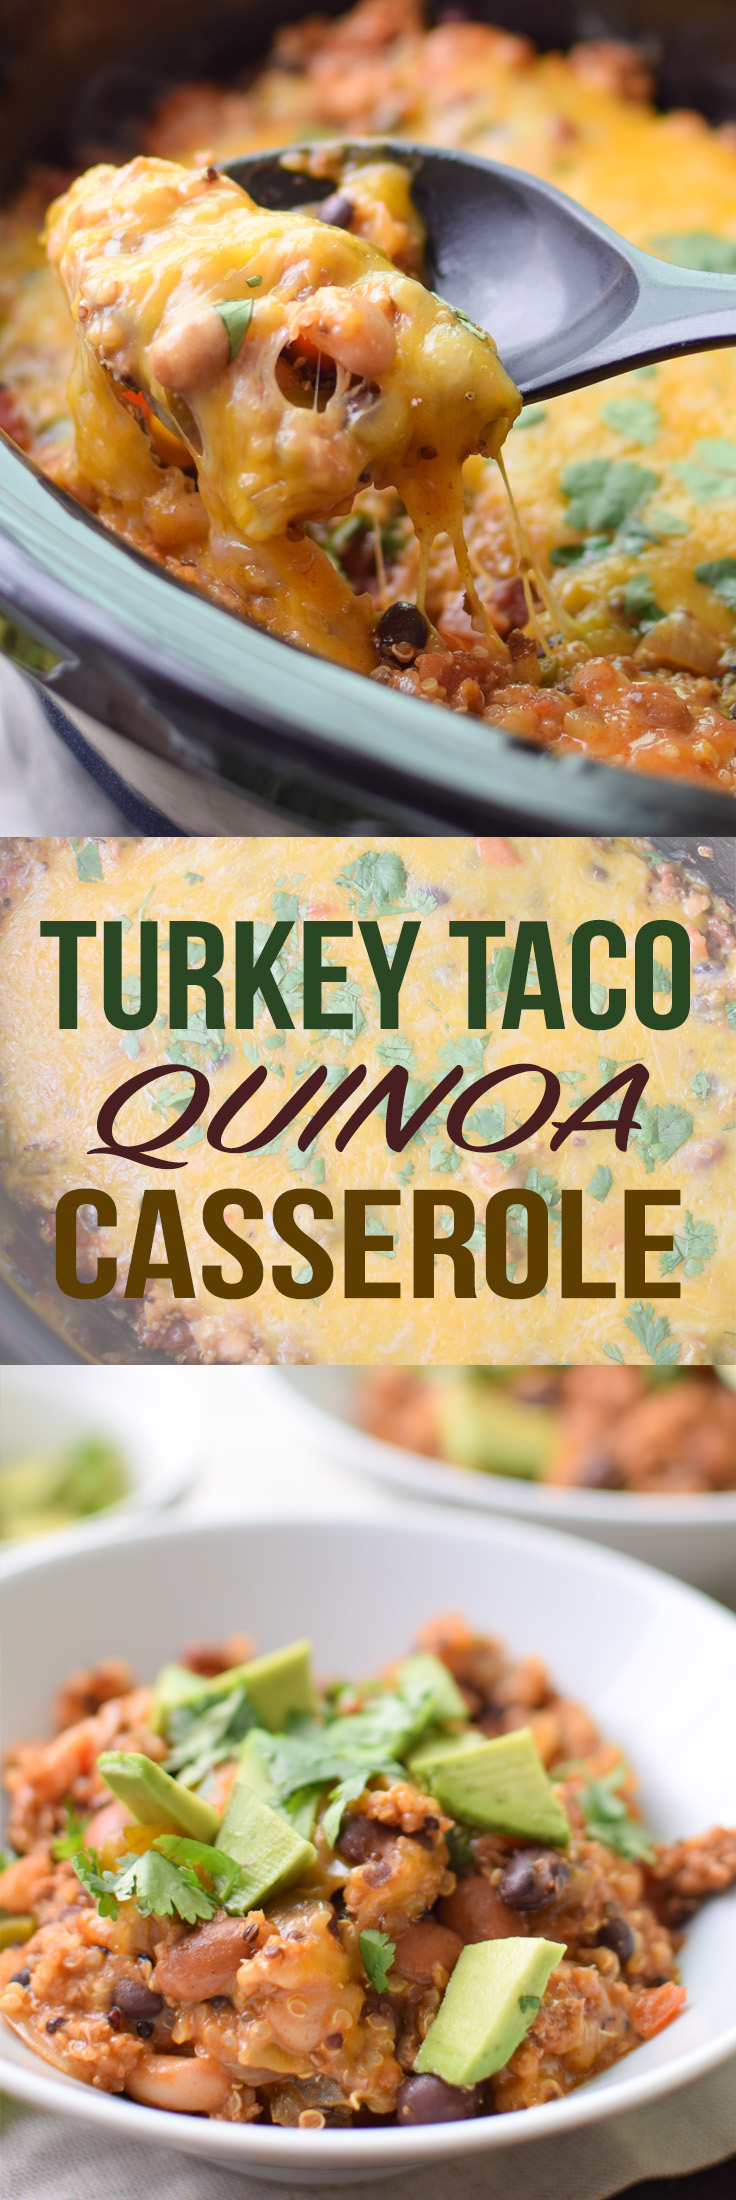 Turkey Taco Quinoa Casserole recipe - Main dish meal with ground turkey, quinoa, beans, peppers, in a yummy taco sauce smothered in cheese! - ProjectMealPlan.com